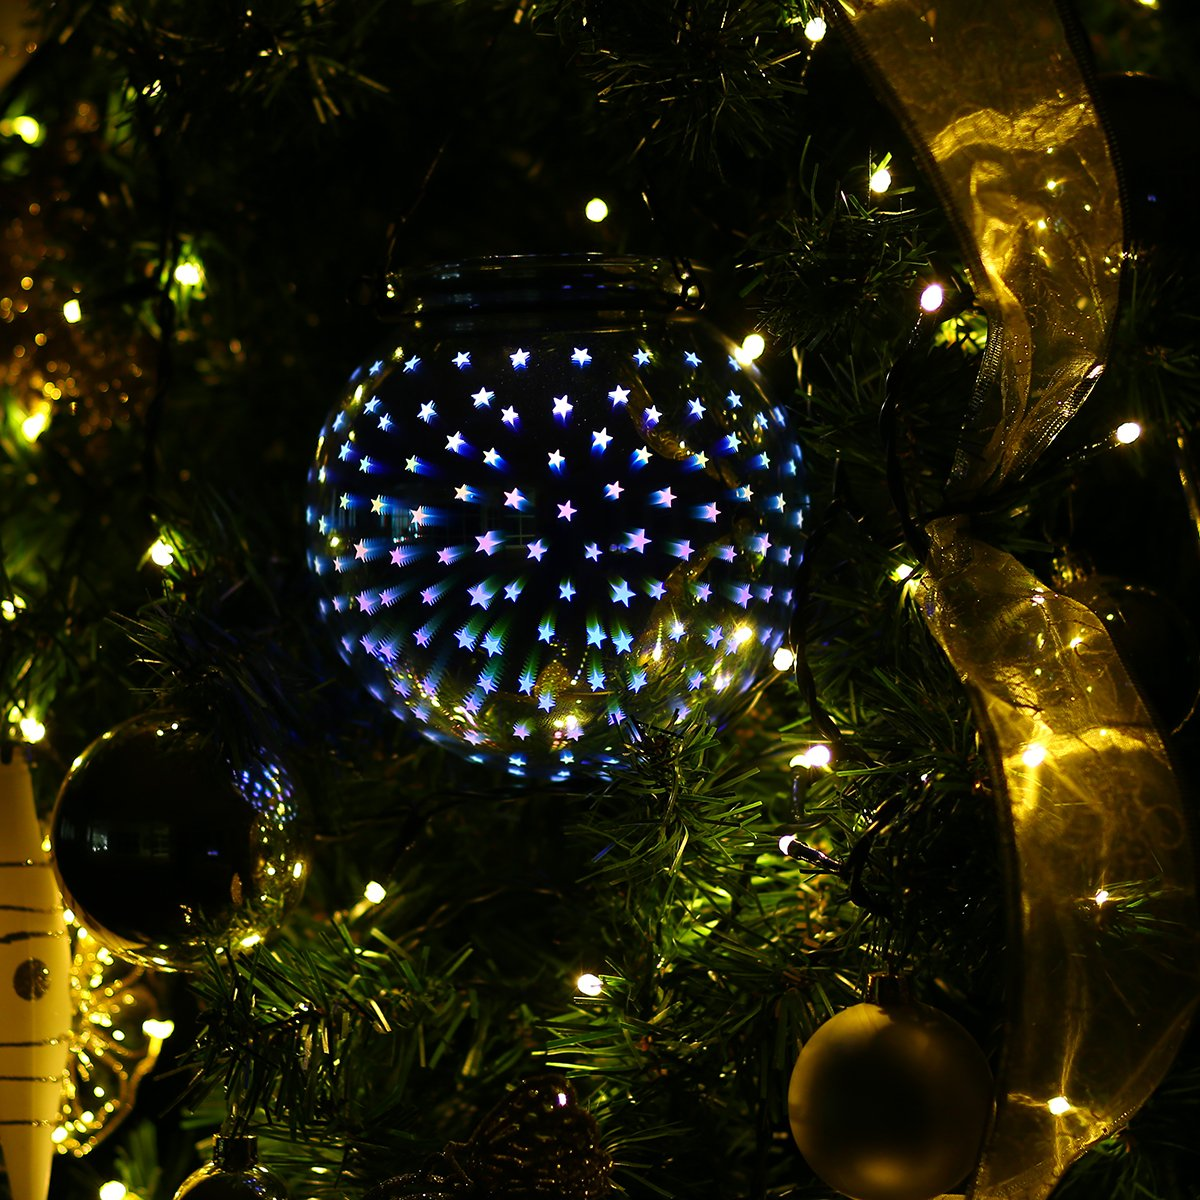 amazoncom valery madelyn winter wishes silver white christmas glass ball ornaments with 3d stars led sphere light for hanging and table centerpiece - Sphere Christmas Lights